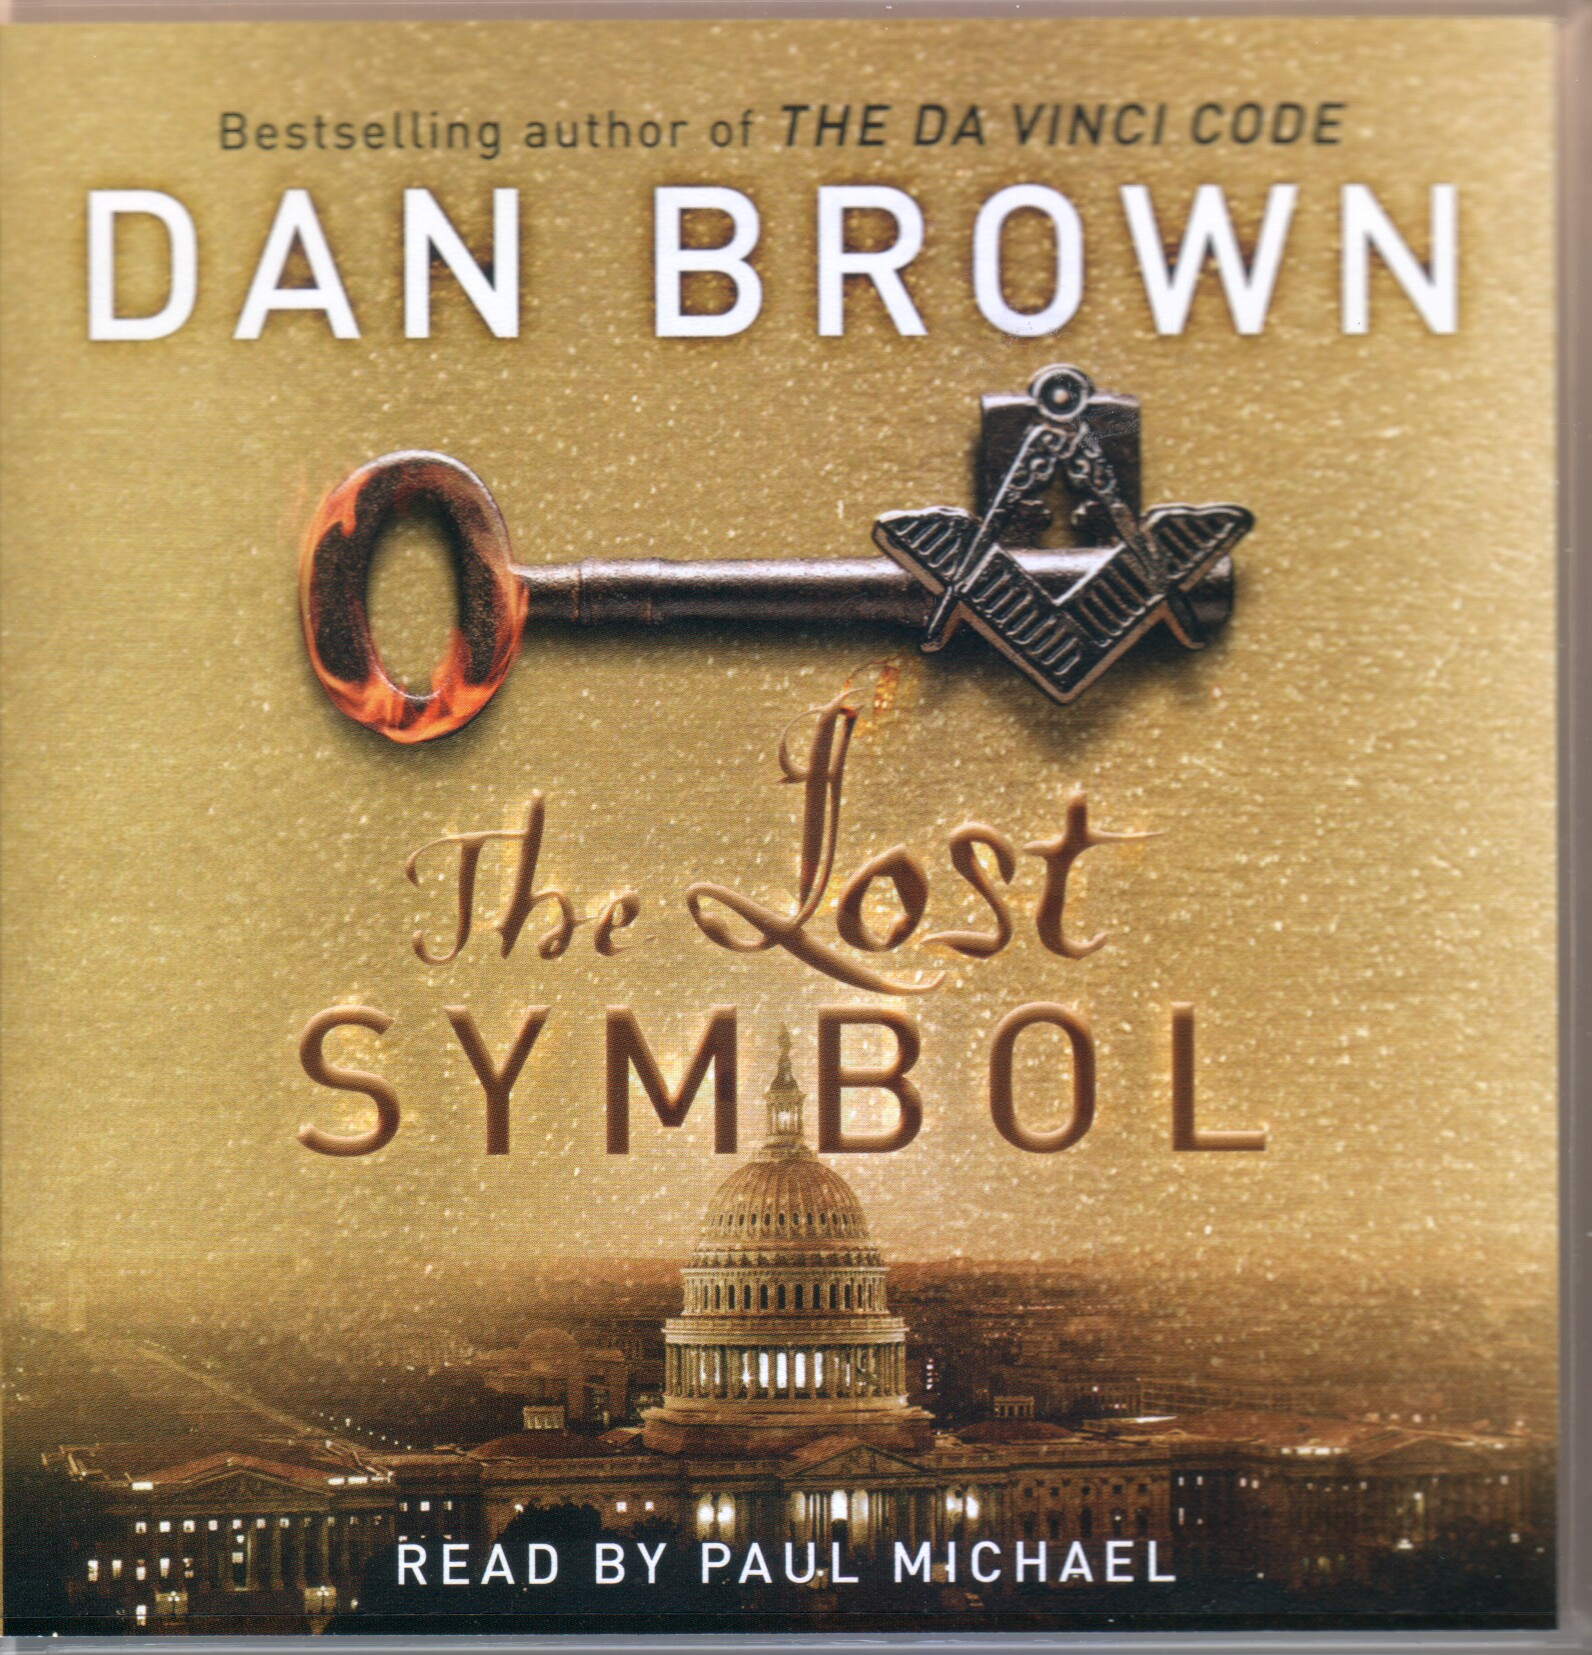 An analysis of the lost symbol by dan brown